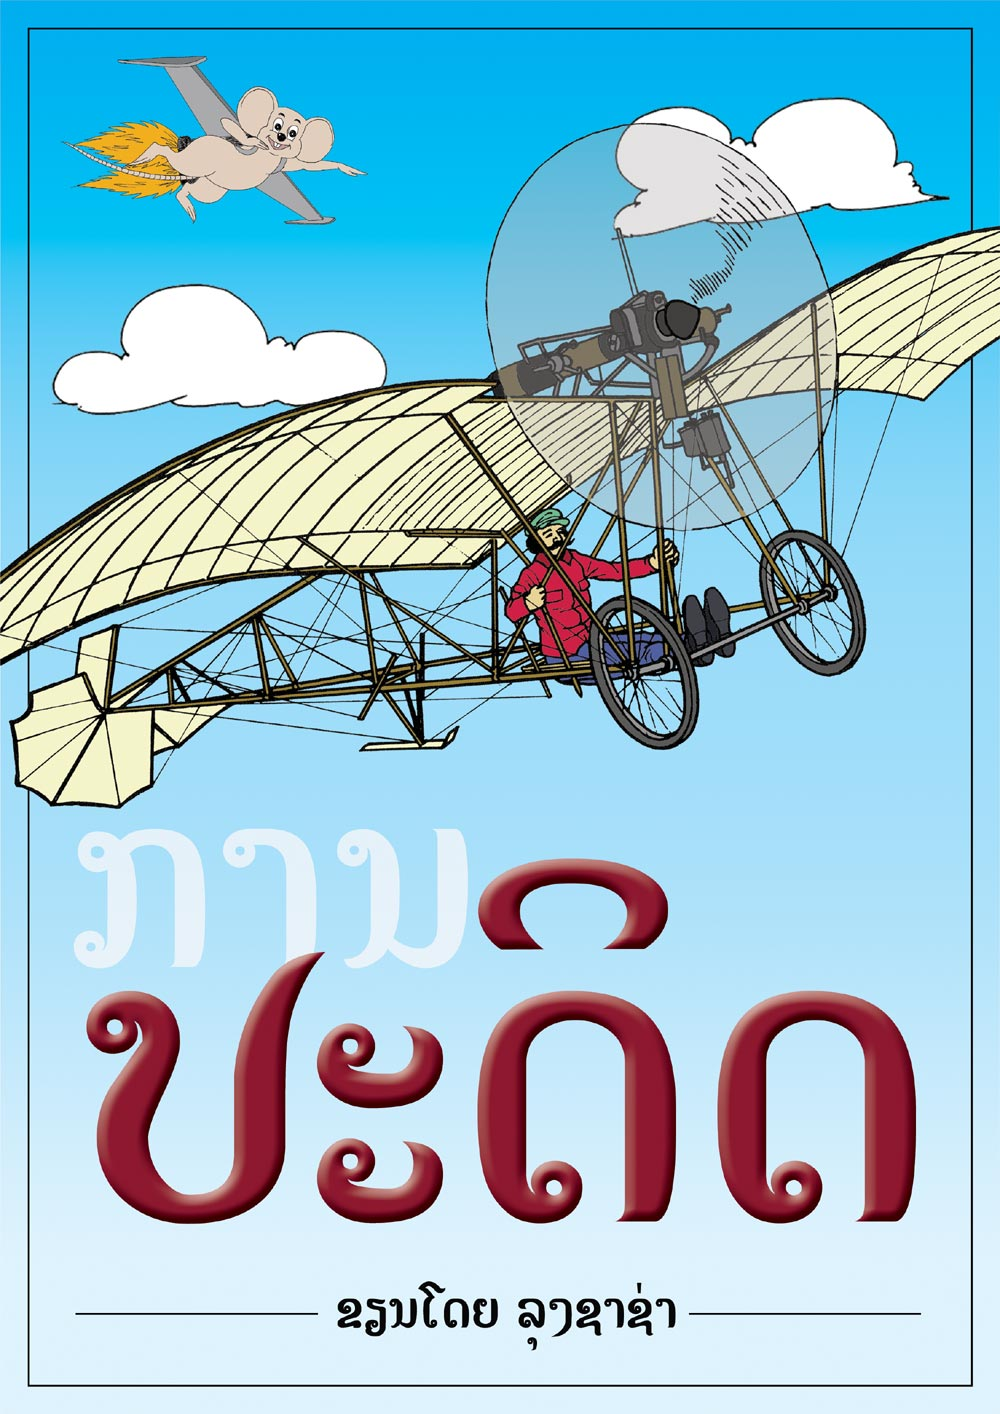 Inventions large book cover, published in Lao language